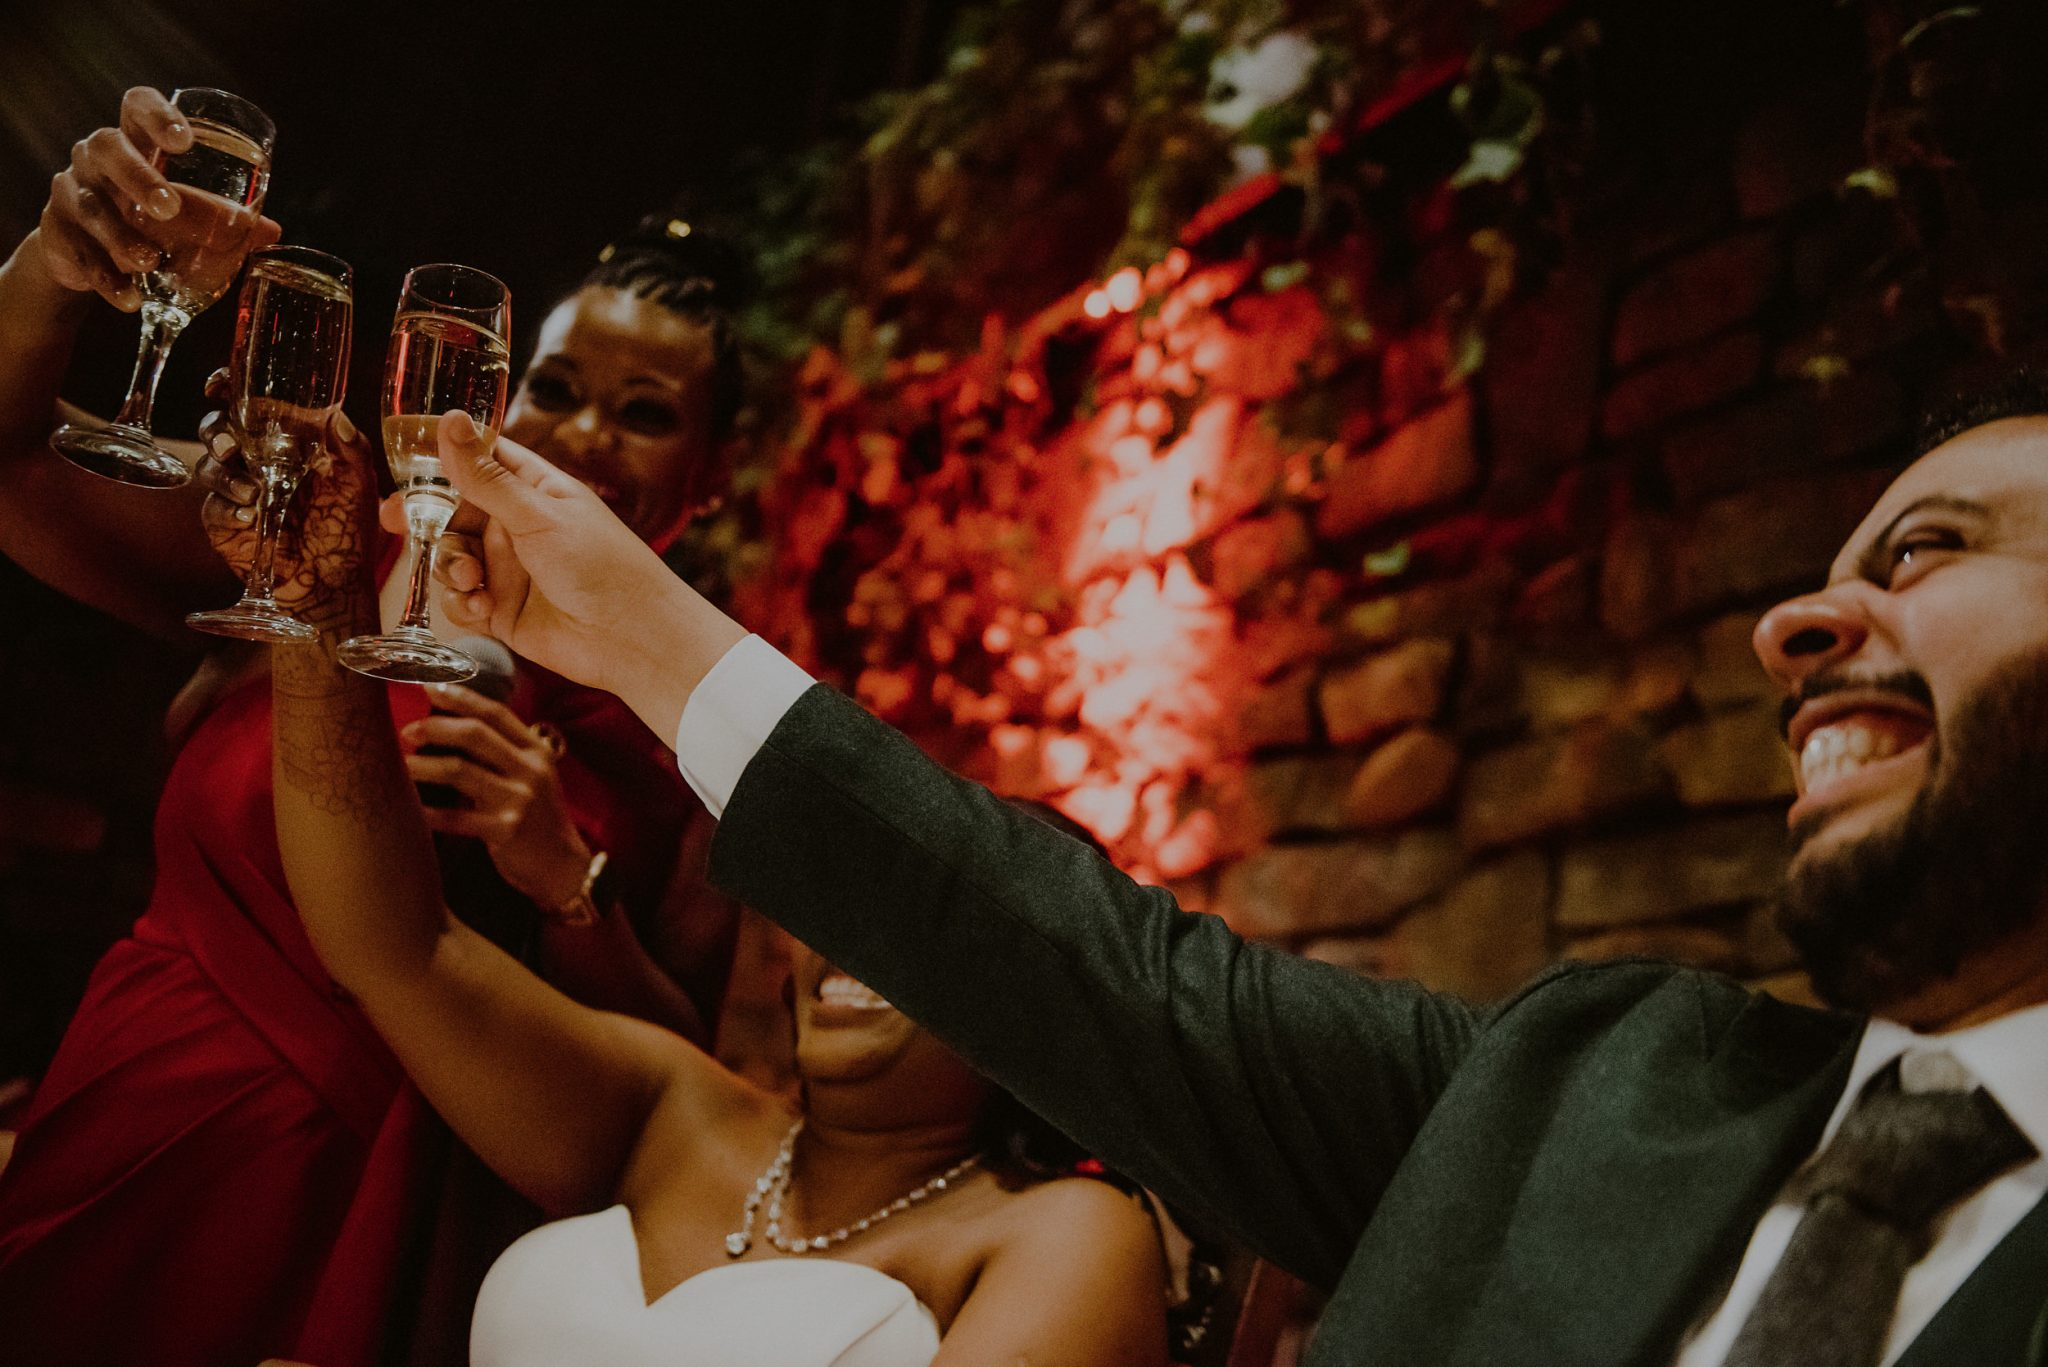 joyful expression on groom's face during toast at fox hollow